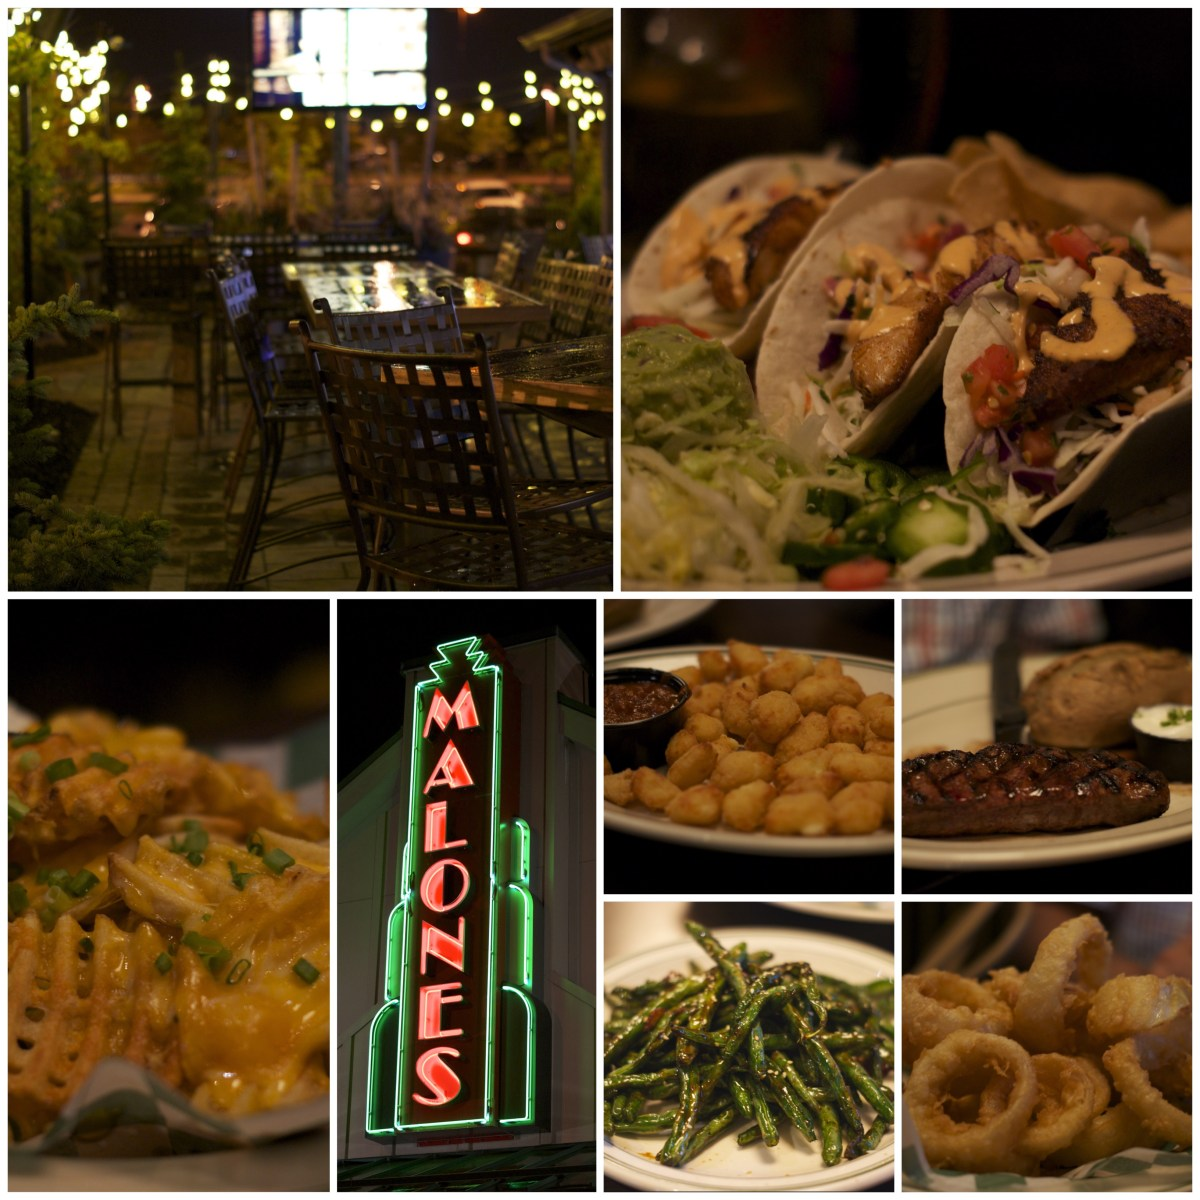 Malone's Bar and Grill